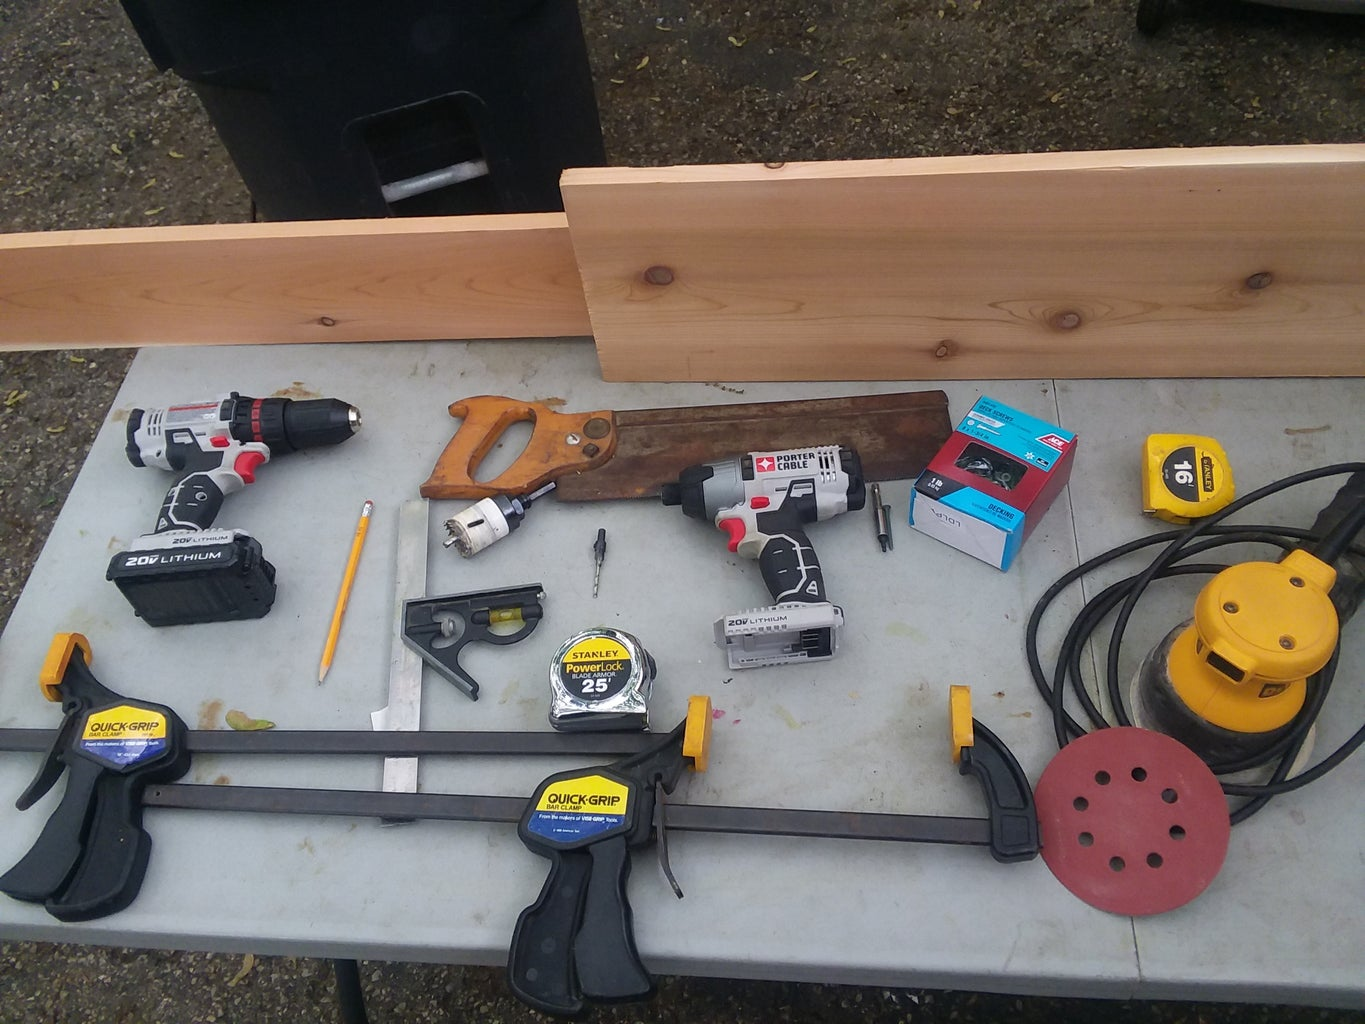 Preparations and Set Up (with Tools and Materials List)